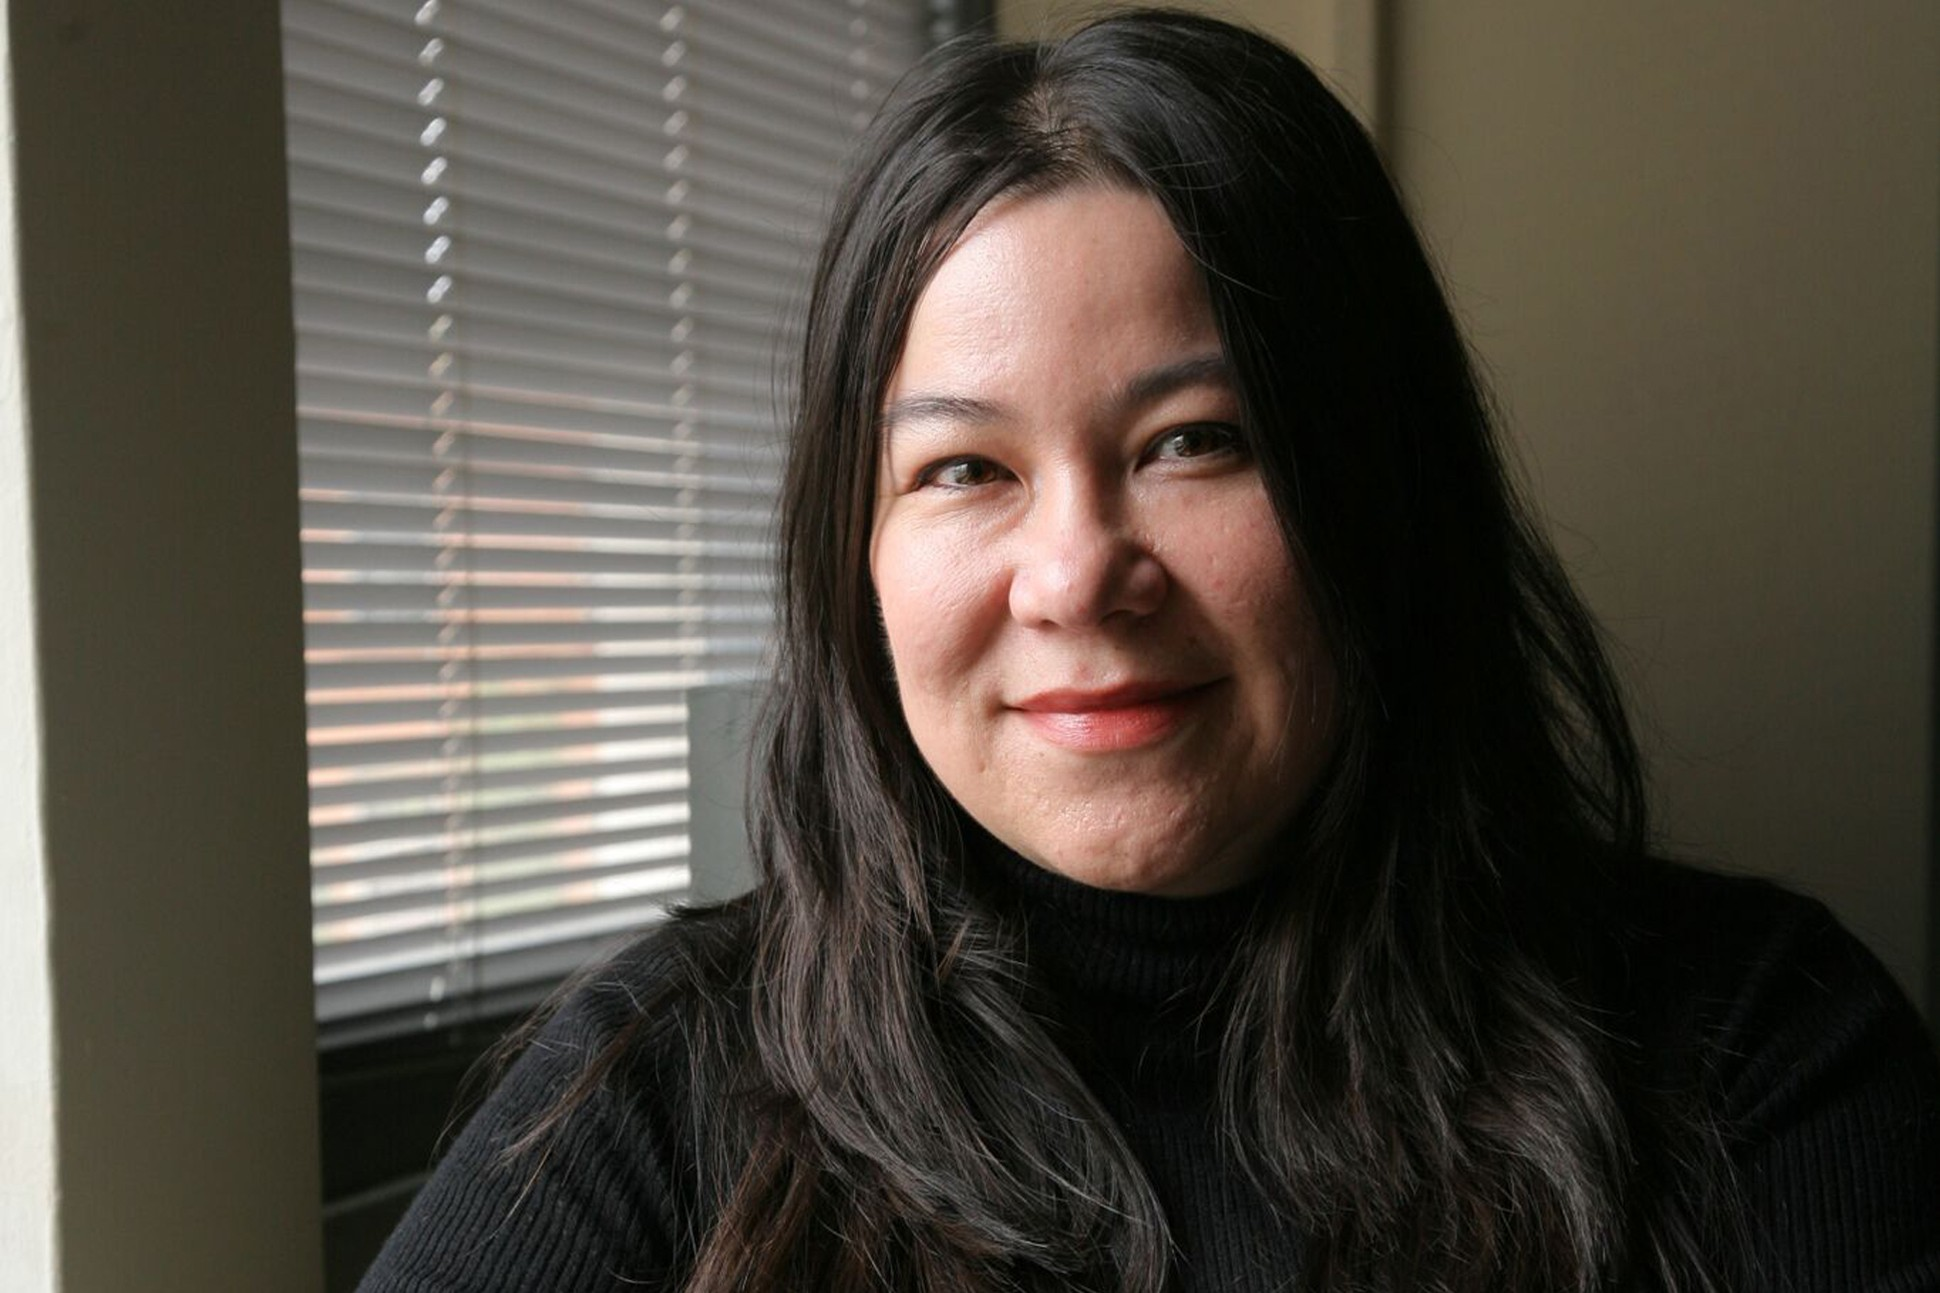 Image of Brenda Shaughnessy